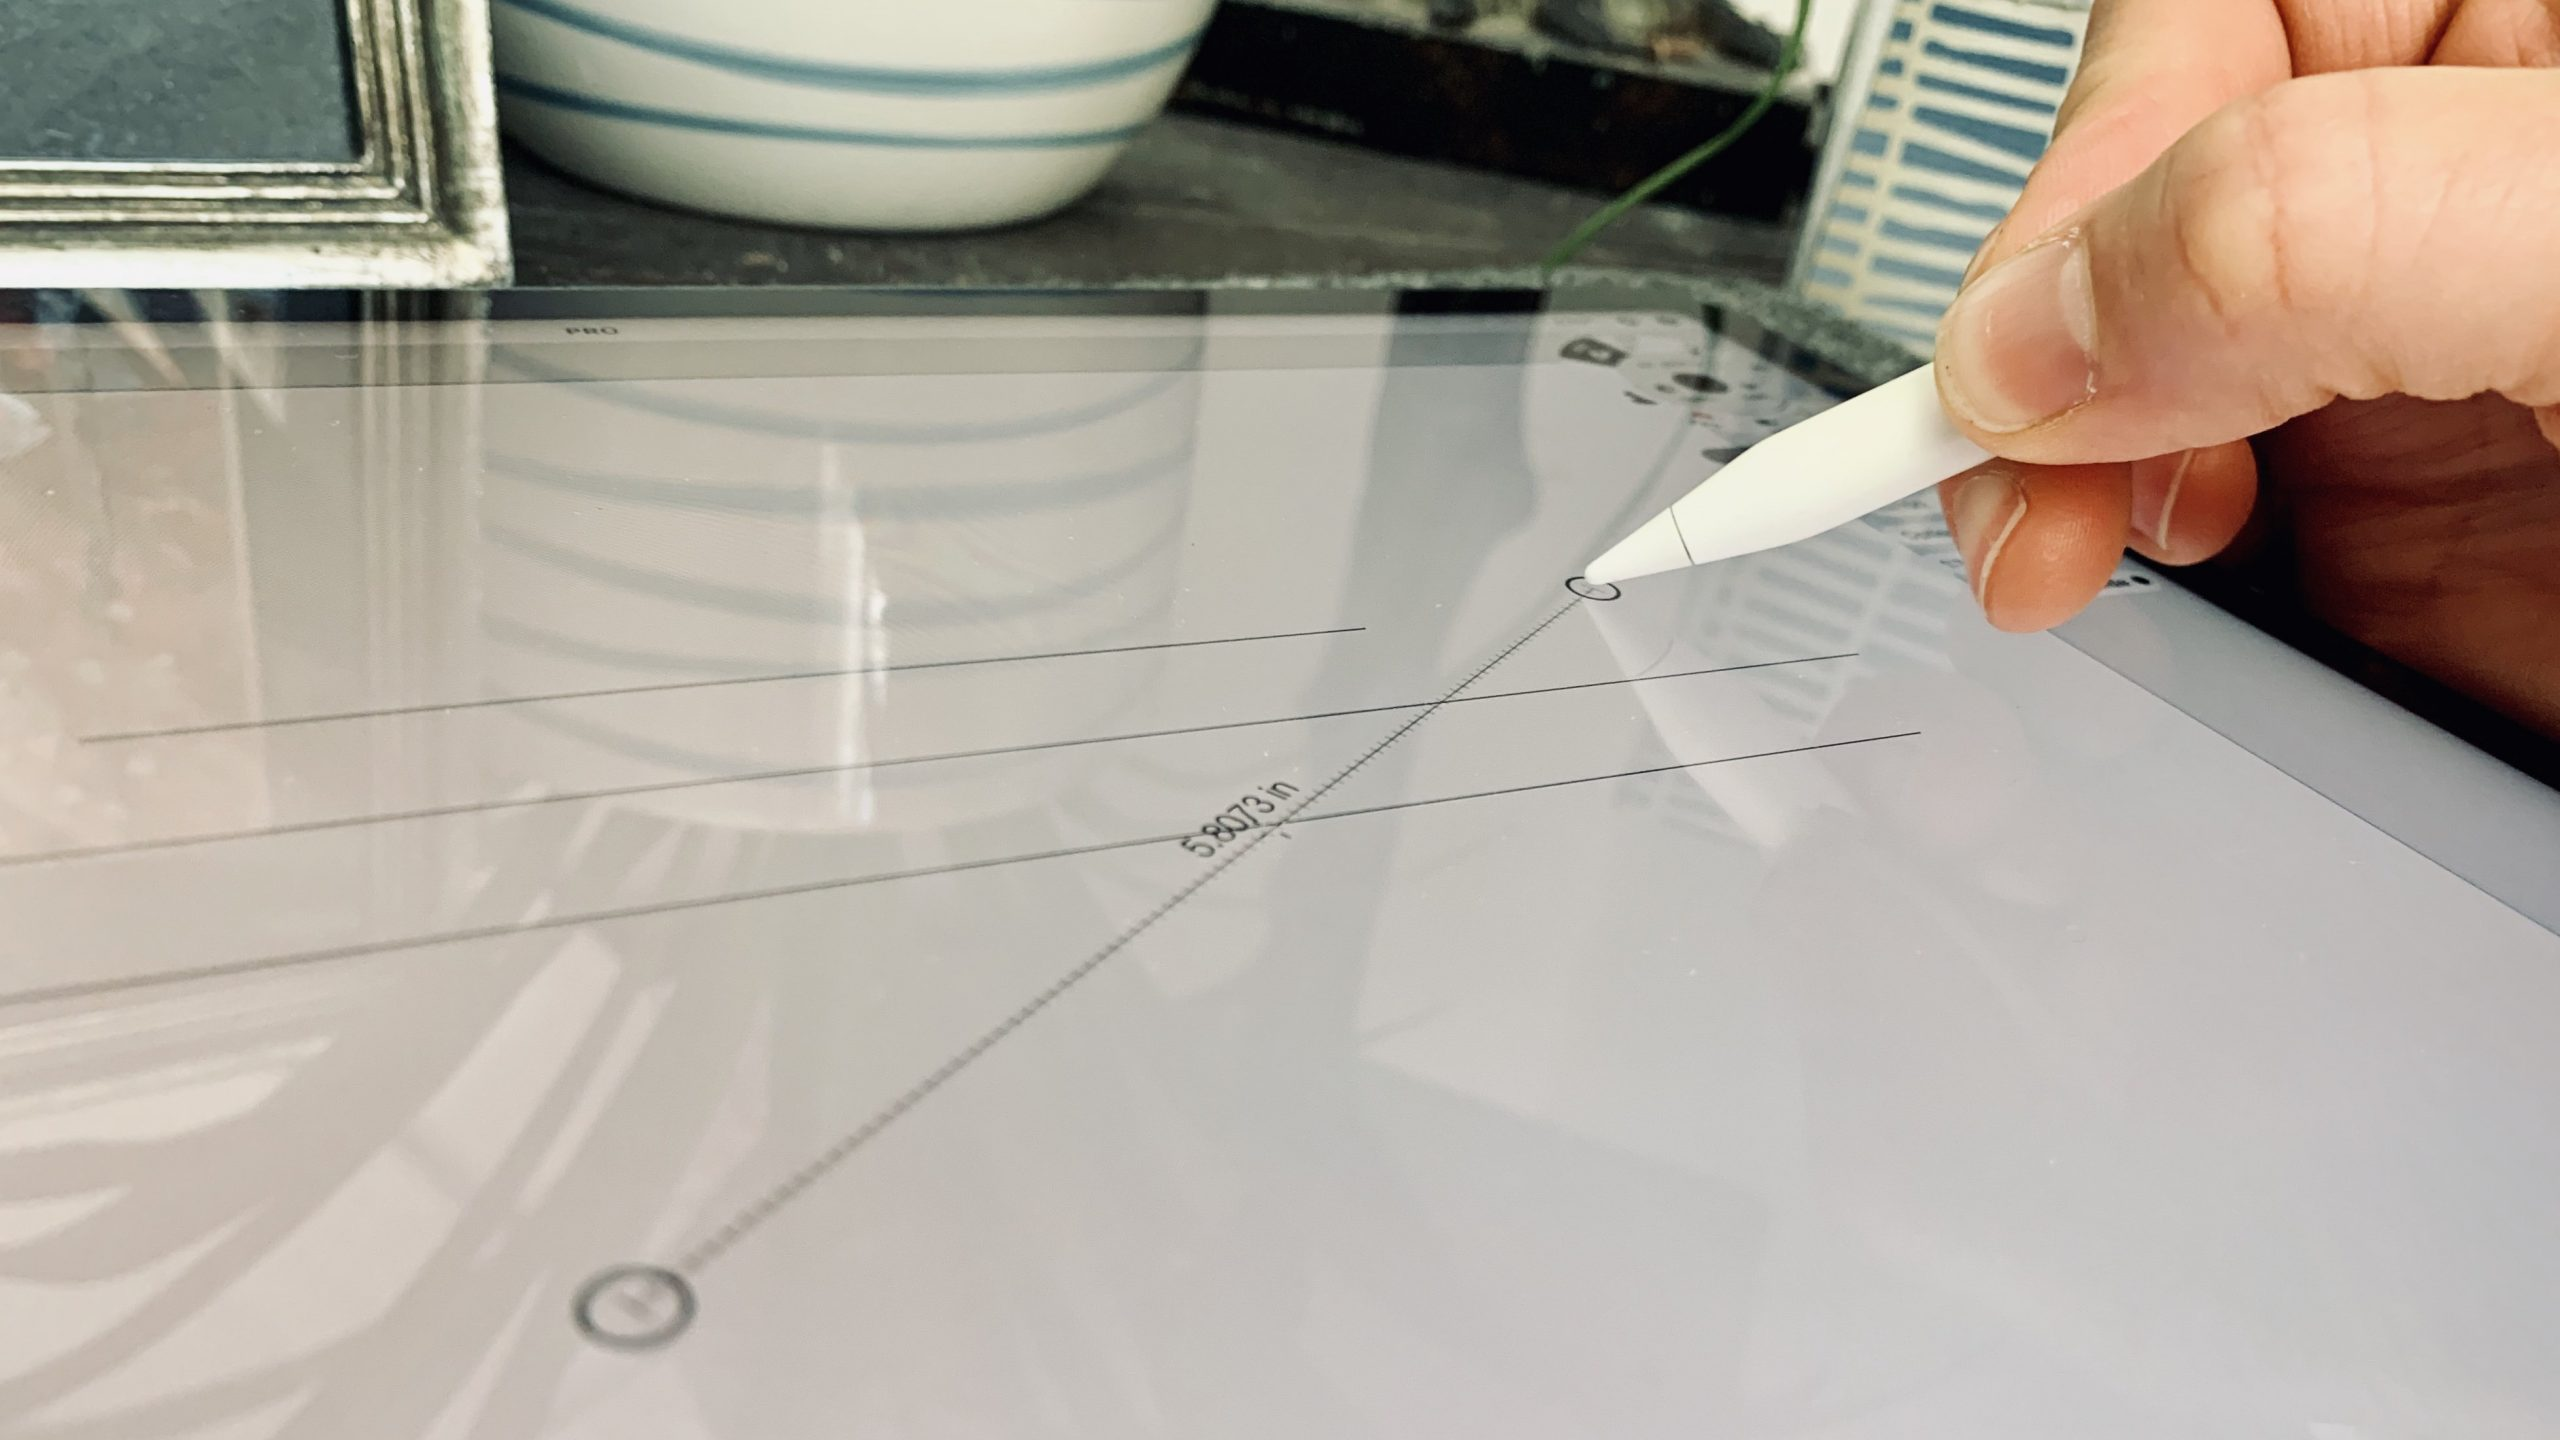 What Are the Basic Concepts Associated with Straight Lines?